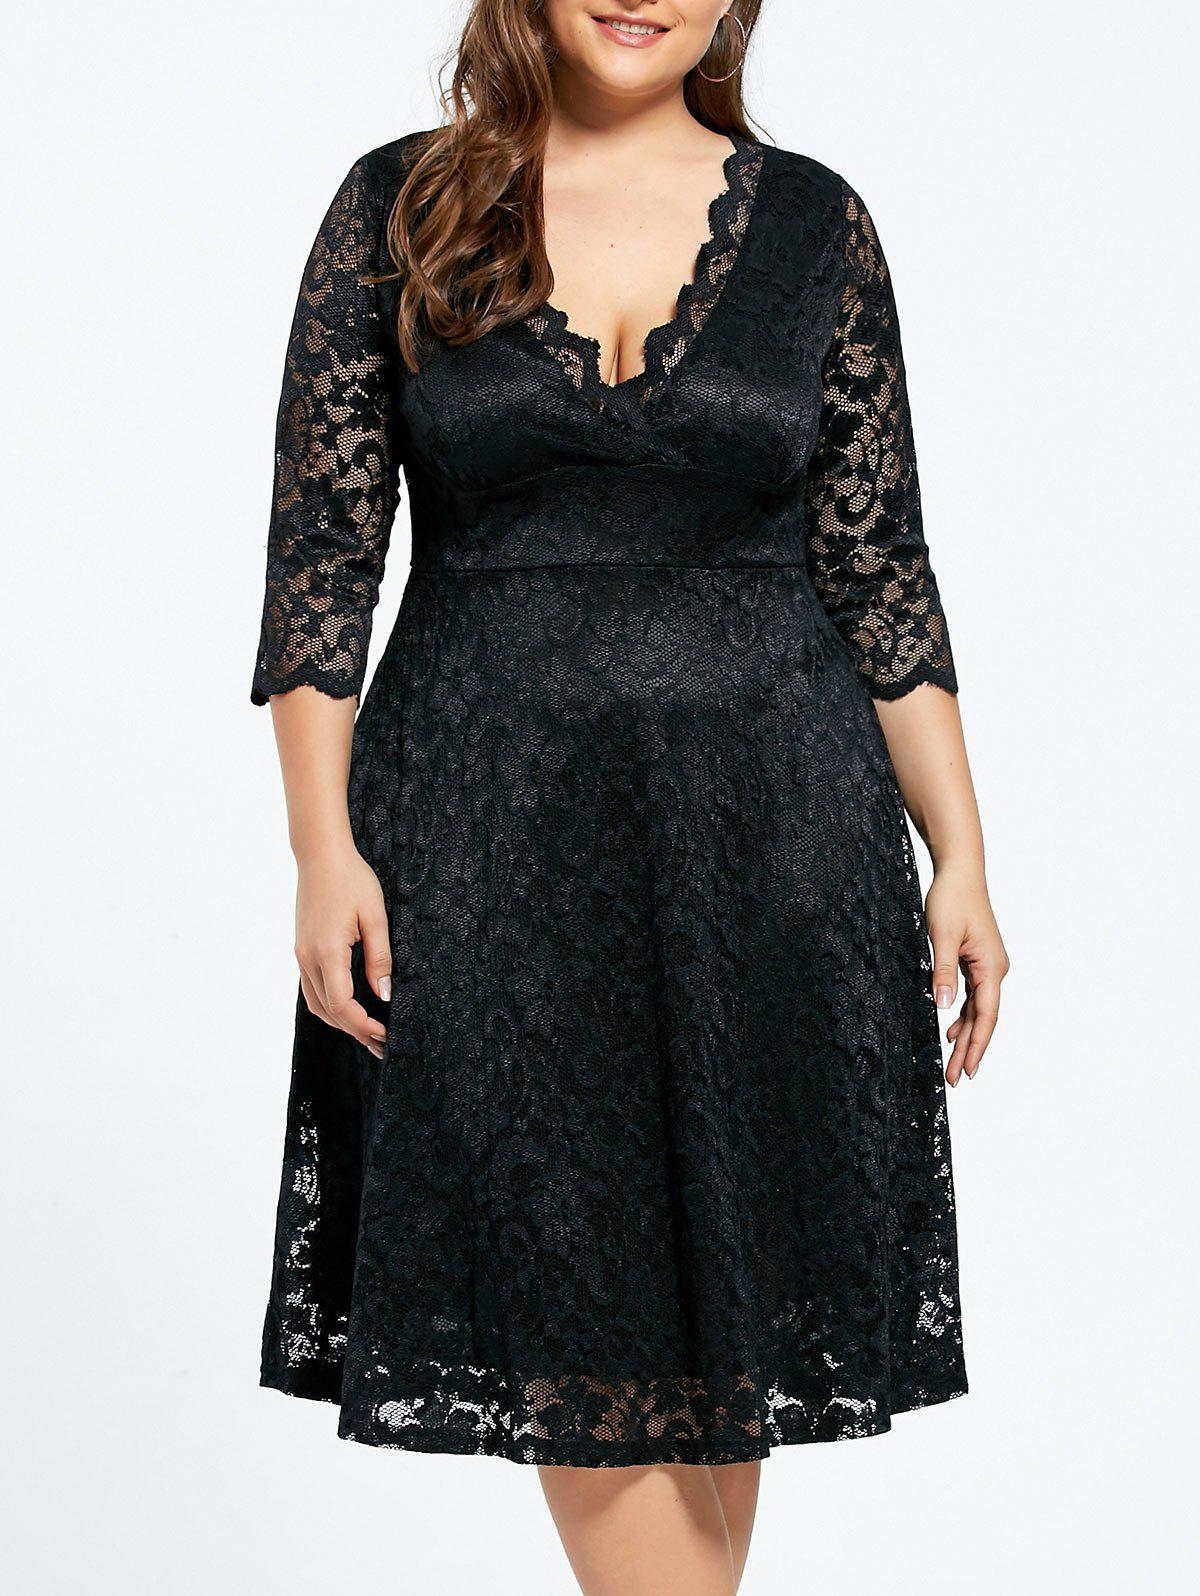 Plus Size Lace Maid of Honor DressWOMEN<br><br>Size: 5XL; Color: BLACK; Style: Cute; Material: Polyester; Silhouette: Straight; Dresses Length: Knee-Length; Neckline: V-Neck; Sleeve Length: 3/4 Length Sleeves; Embellishment: Lace; Pattern Type: Solid; With Belt: No; Season: Fall,Spring; Weight: 0.4400kg; Package Contents: 1 x Dress;